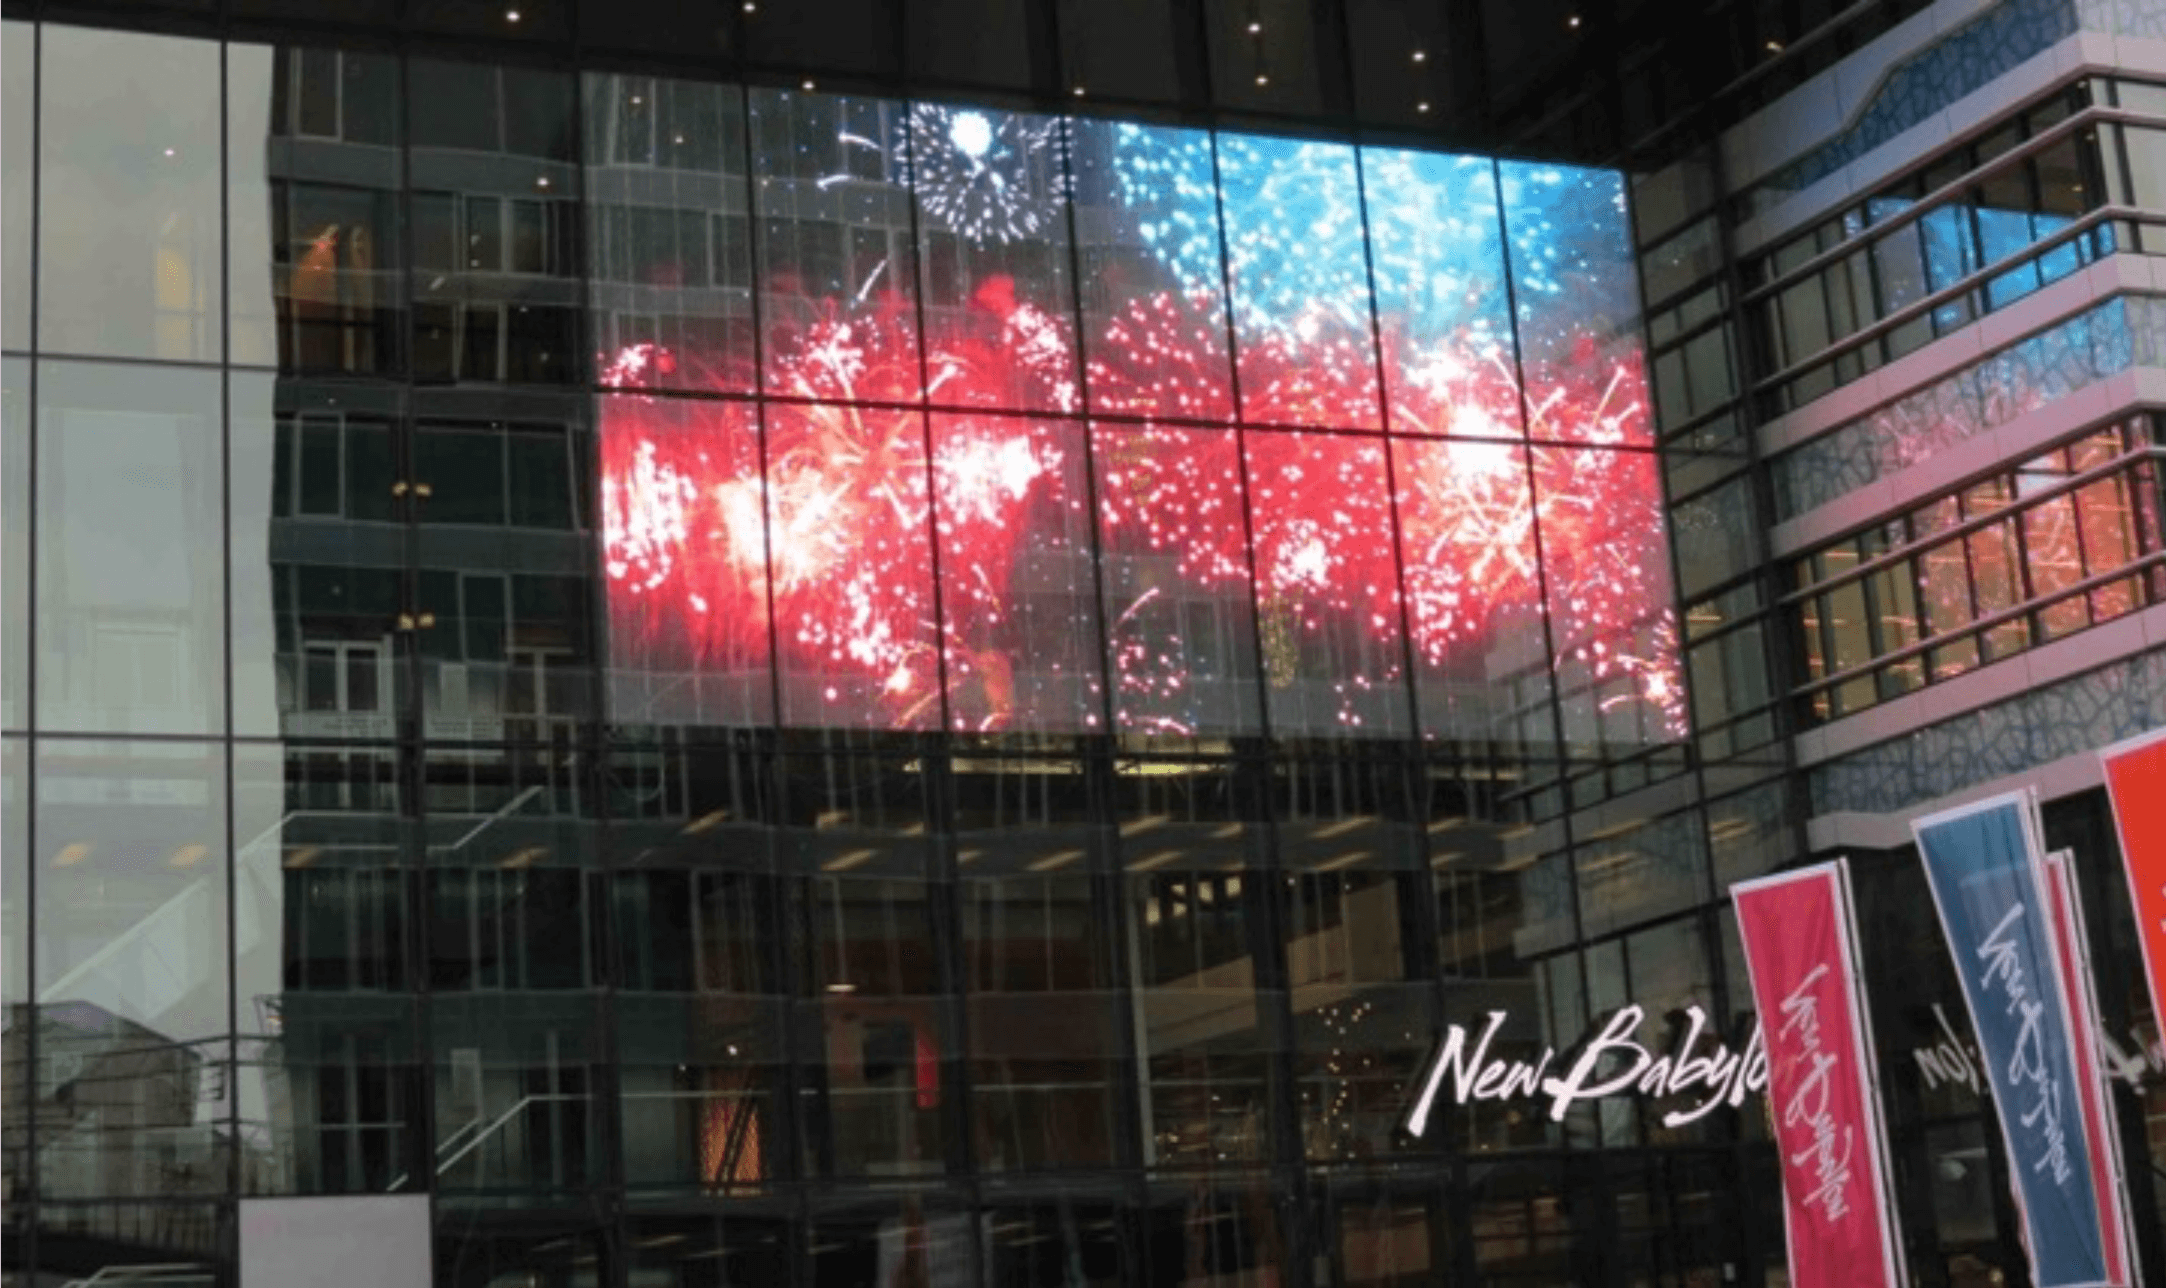 Transparent Indoor Led Panel On Building Facade Street